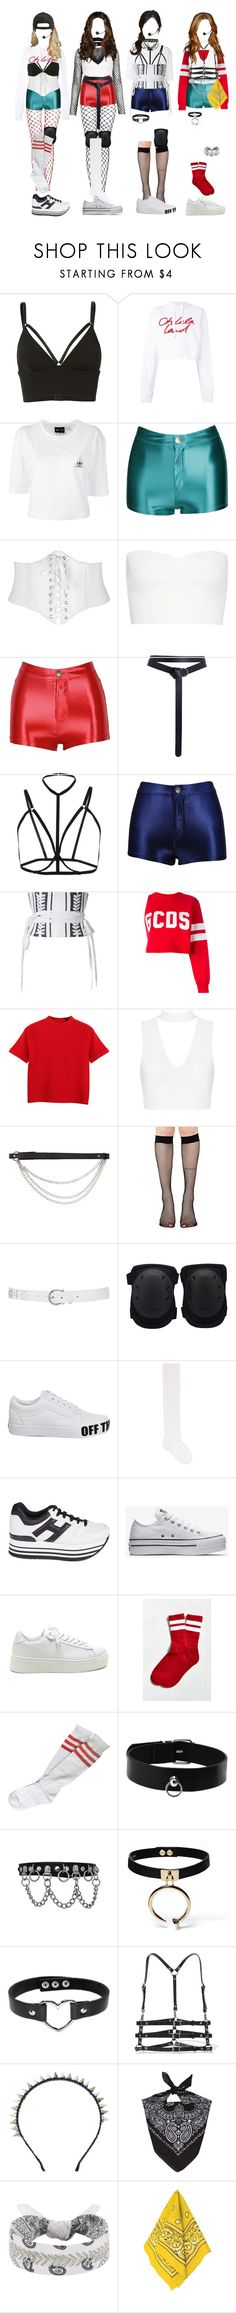 """[ special stage ] G-3 covering ' G-1 _ BLACK MAGIC + G-2 _ MY HEART (mashup) + [ live ] G-3 _ MY LOVE"" by xxeucliffexx ❤ liked on Polyvore featuring T By Alexander Wang, Each X Other, adidas, Victoria Beckham, Zimmermann, Alex Perry, GCDS, Chicnova Fashion, J.J. Winters and Music Legs"